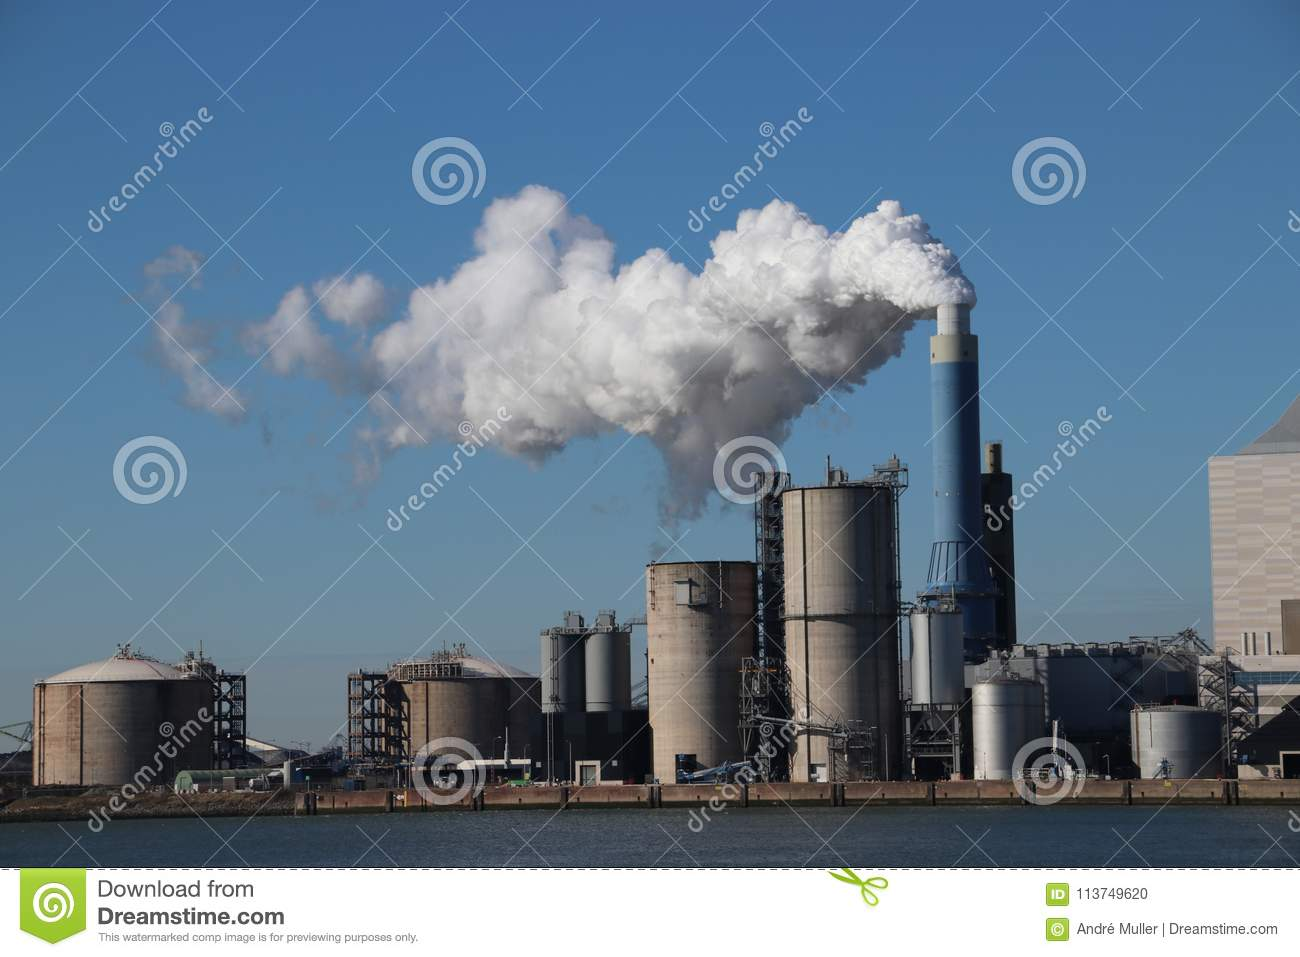 Download Steam Coming Out Of The Chimney At Power Plant In Rotterdam Maas Stock Photo - Image of rotterdam, maasvlakte: 113749620